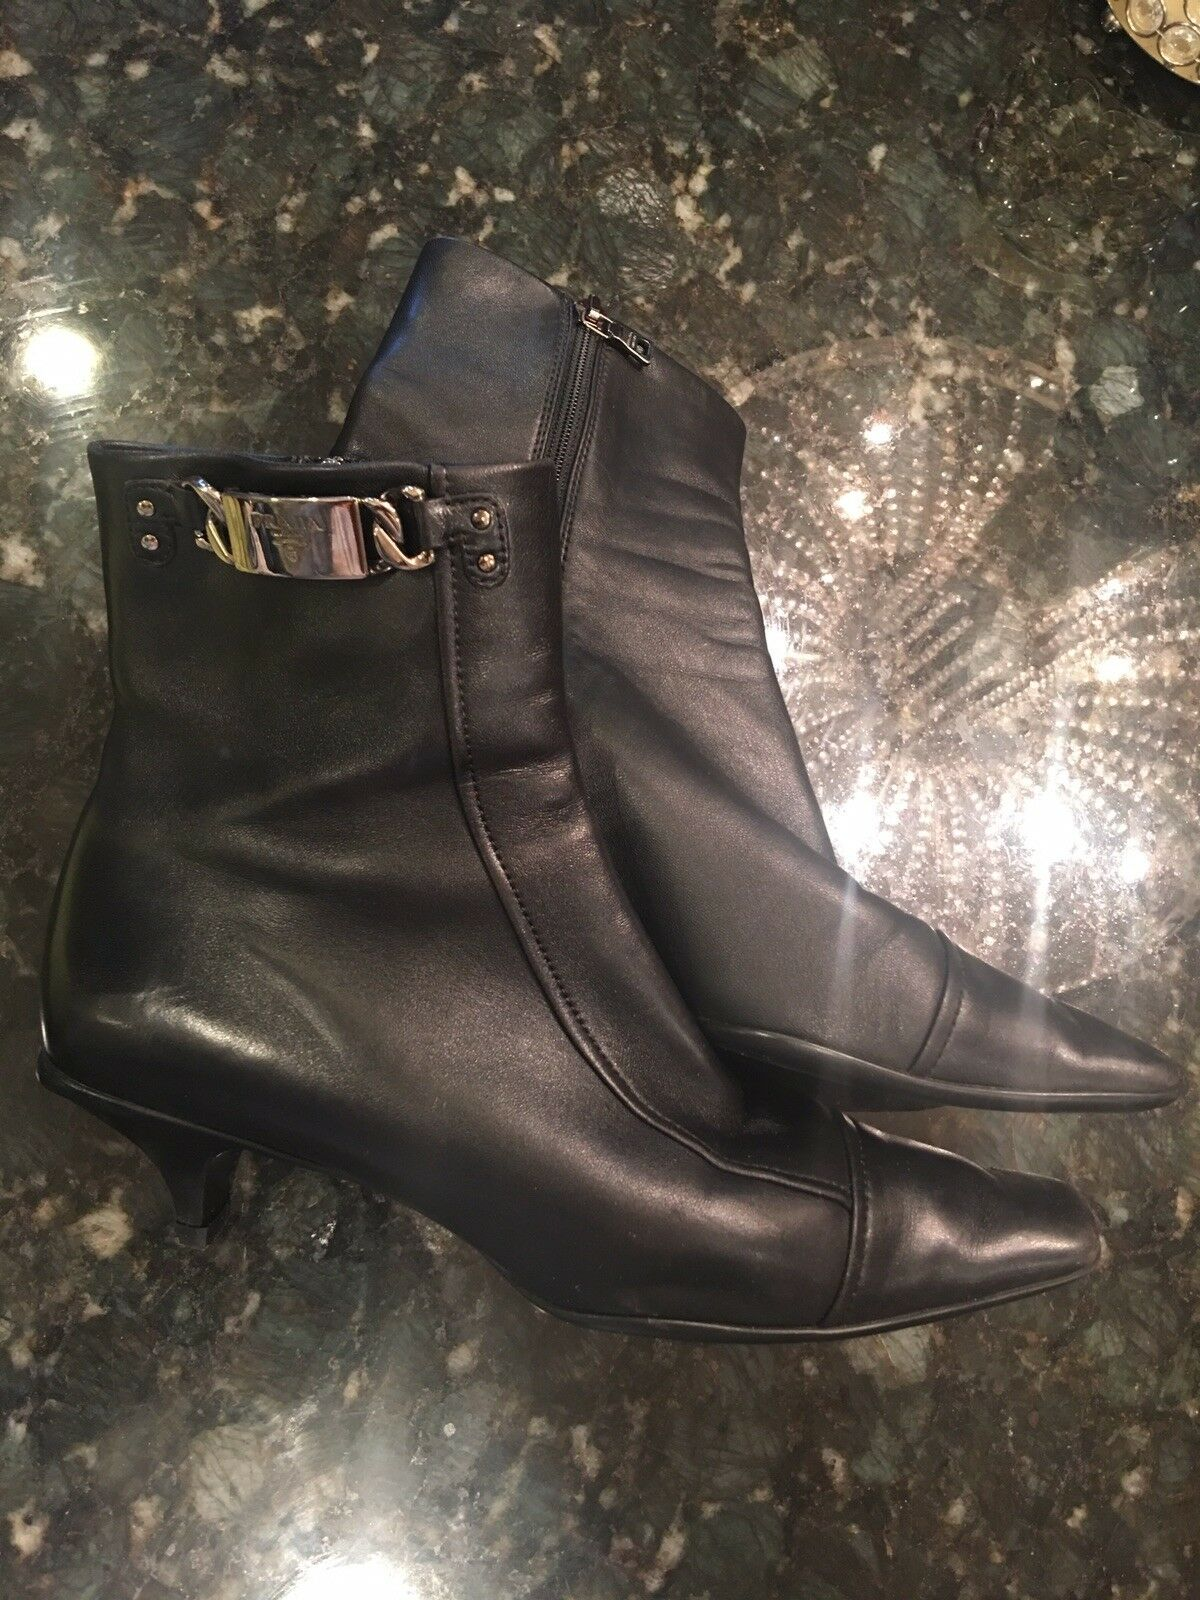 Authentic PRADA Women's black leather ANKLE SHOE BOOTIES BOOTS Size 8/ 38